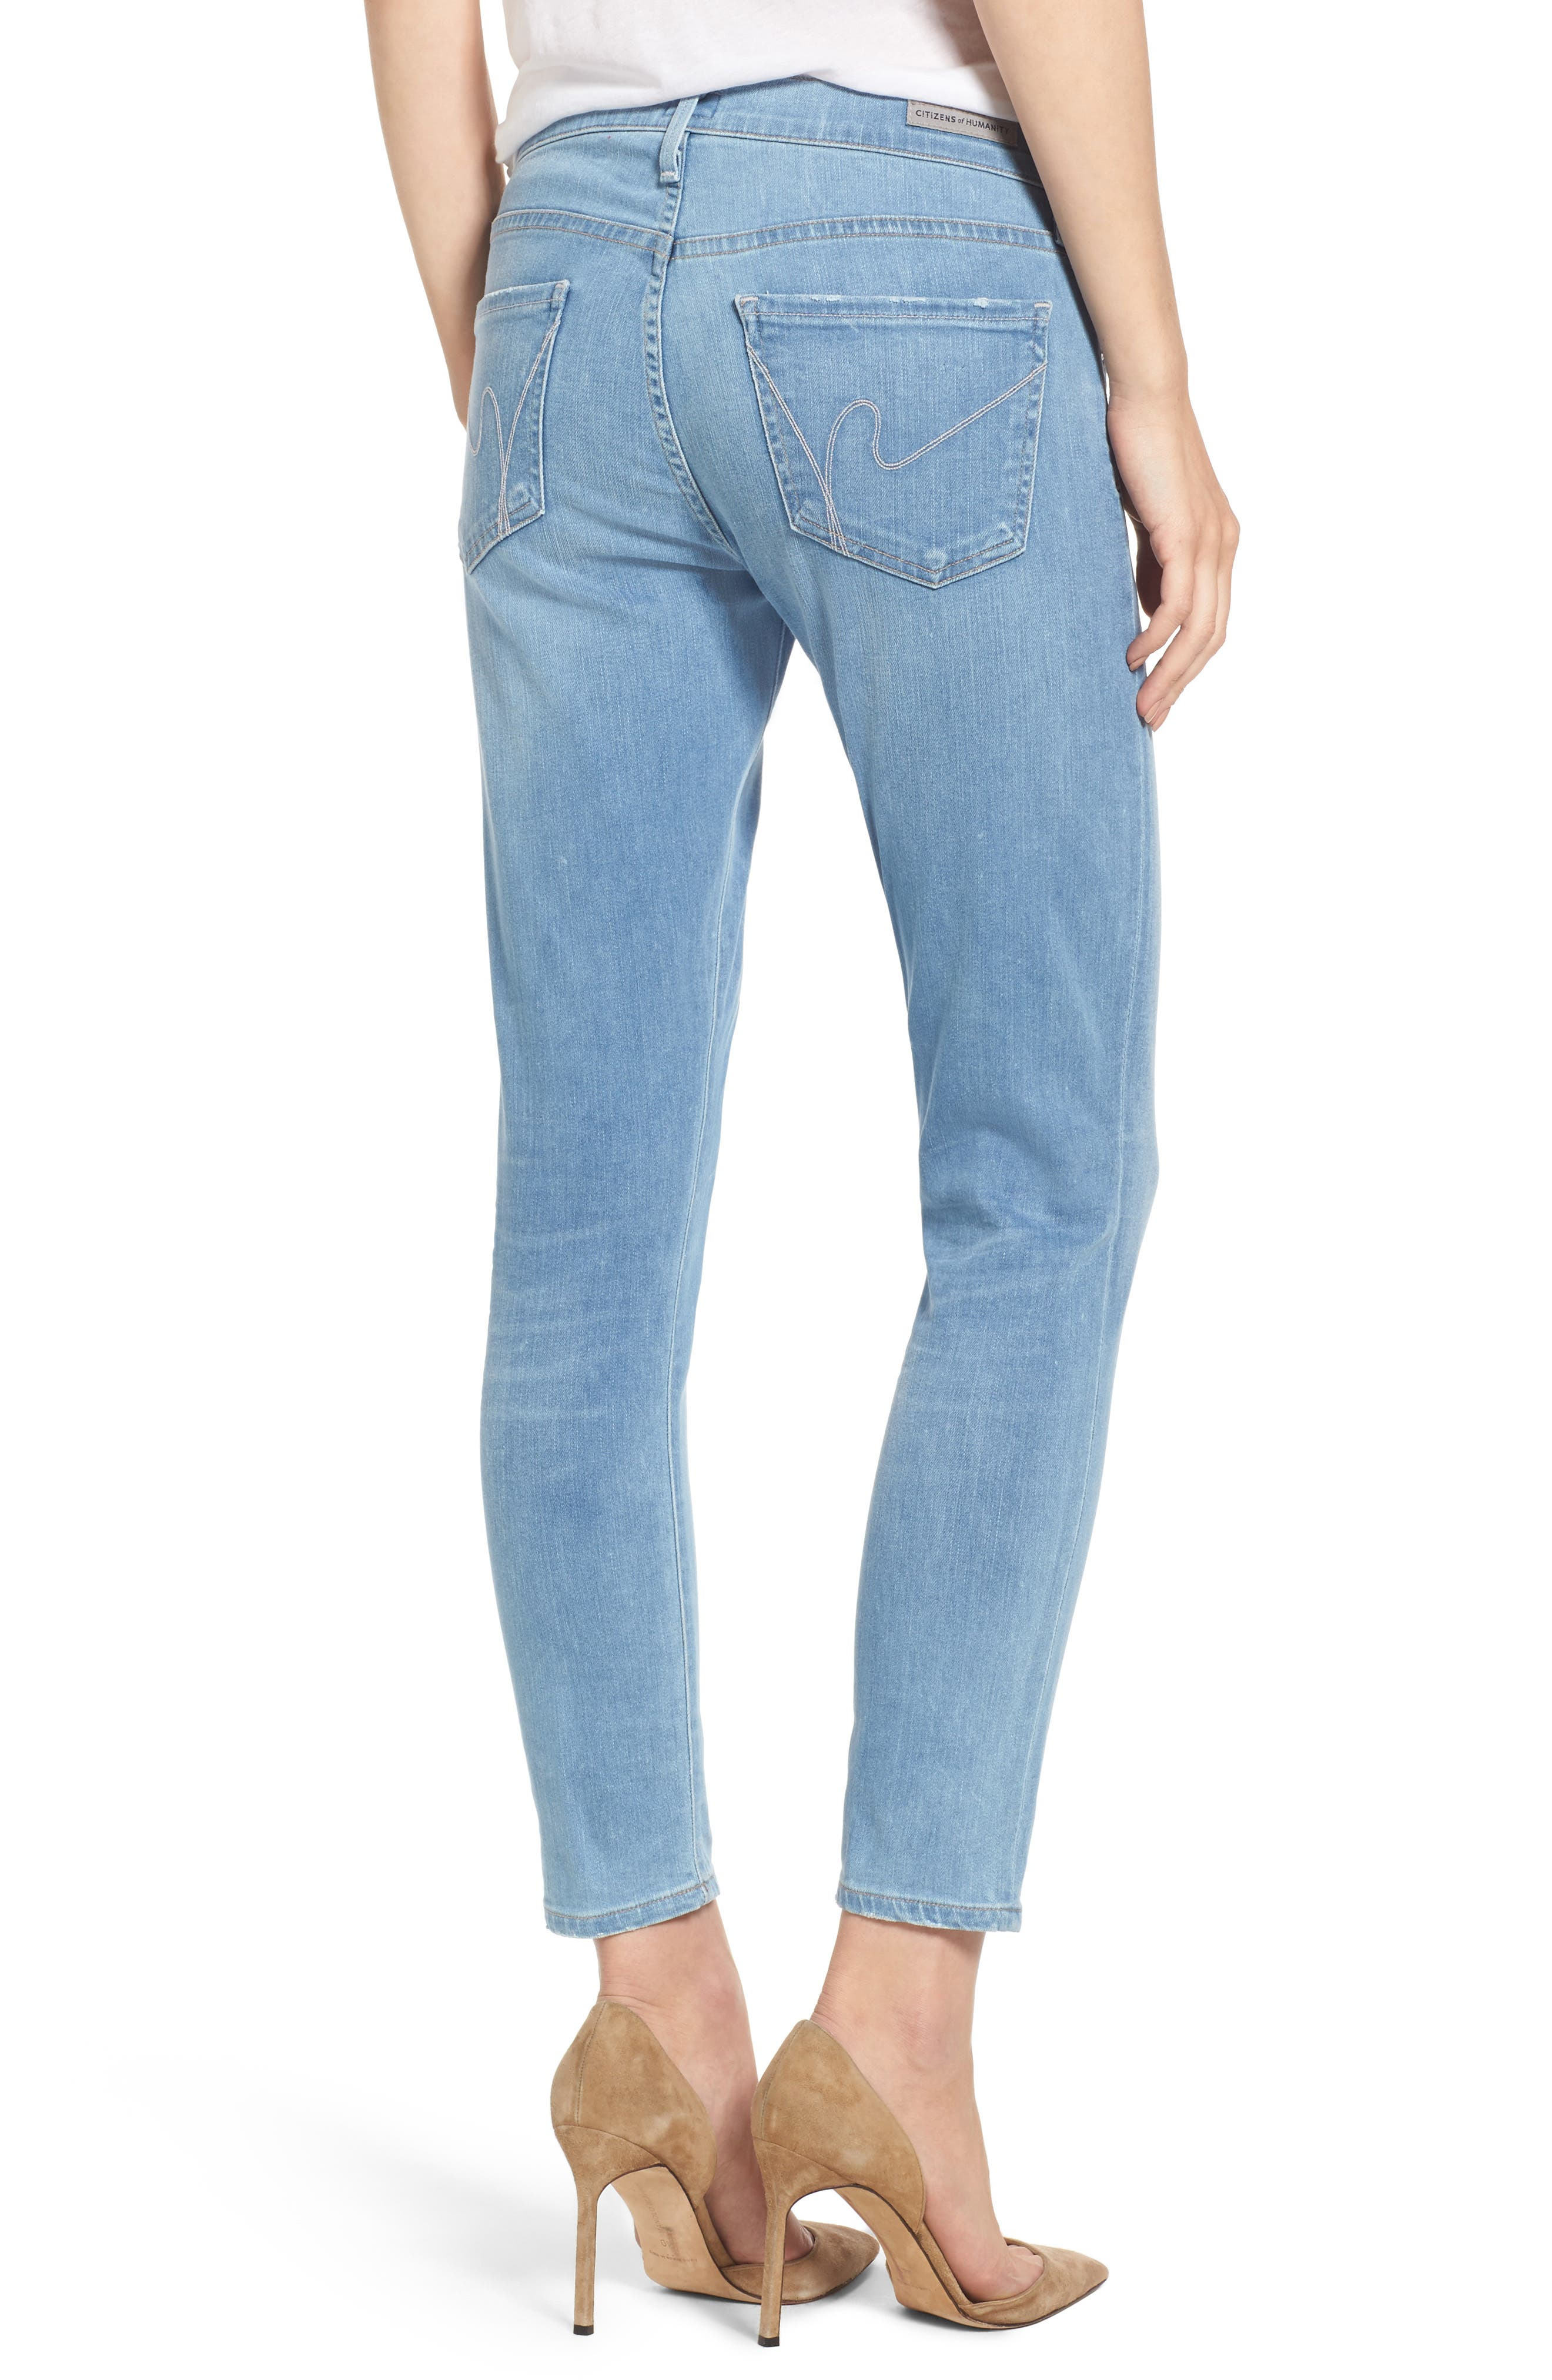 Avedon Ultra Skinny Jeans,                             Alternate thumbnail 2, color,                             455